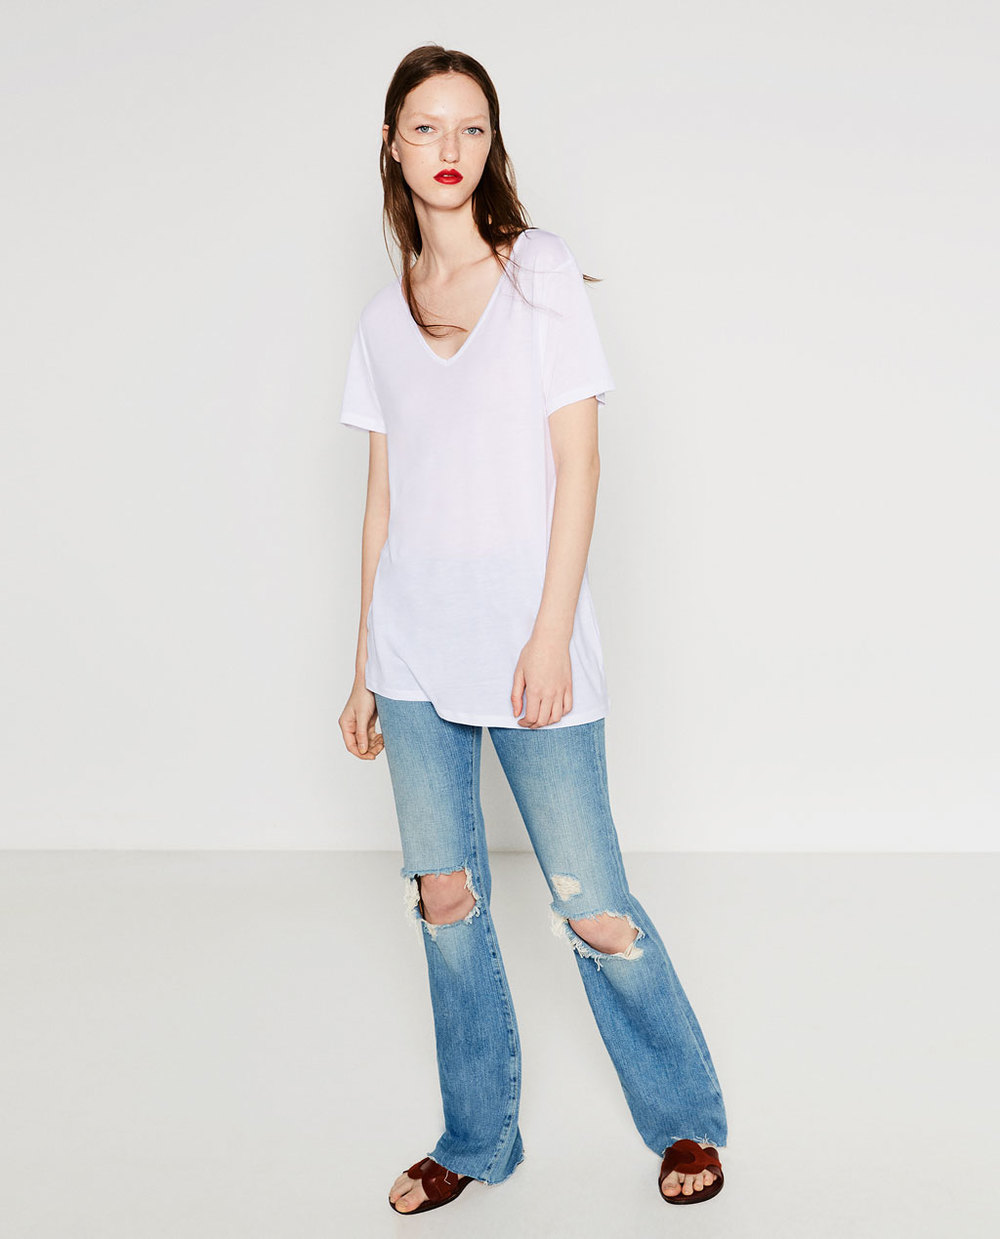 ZARA  - Extra long tee in 3 colors: White, Black and Grey. Nice low v-neck and long in the body.